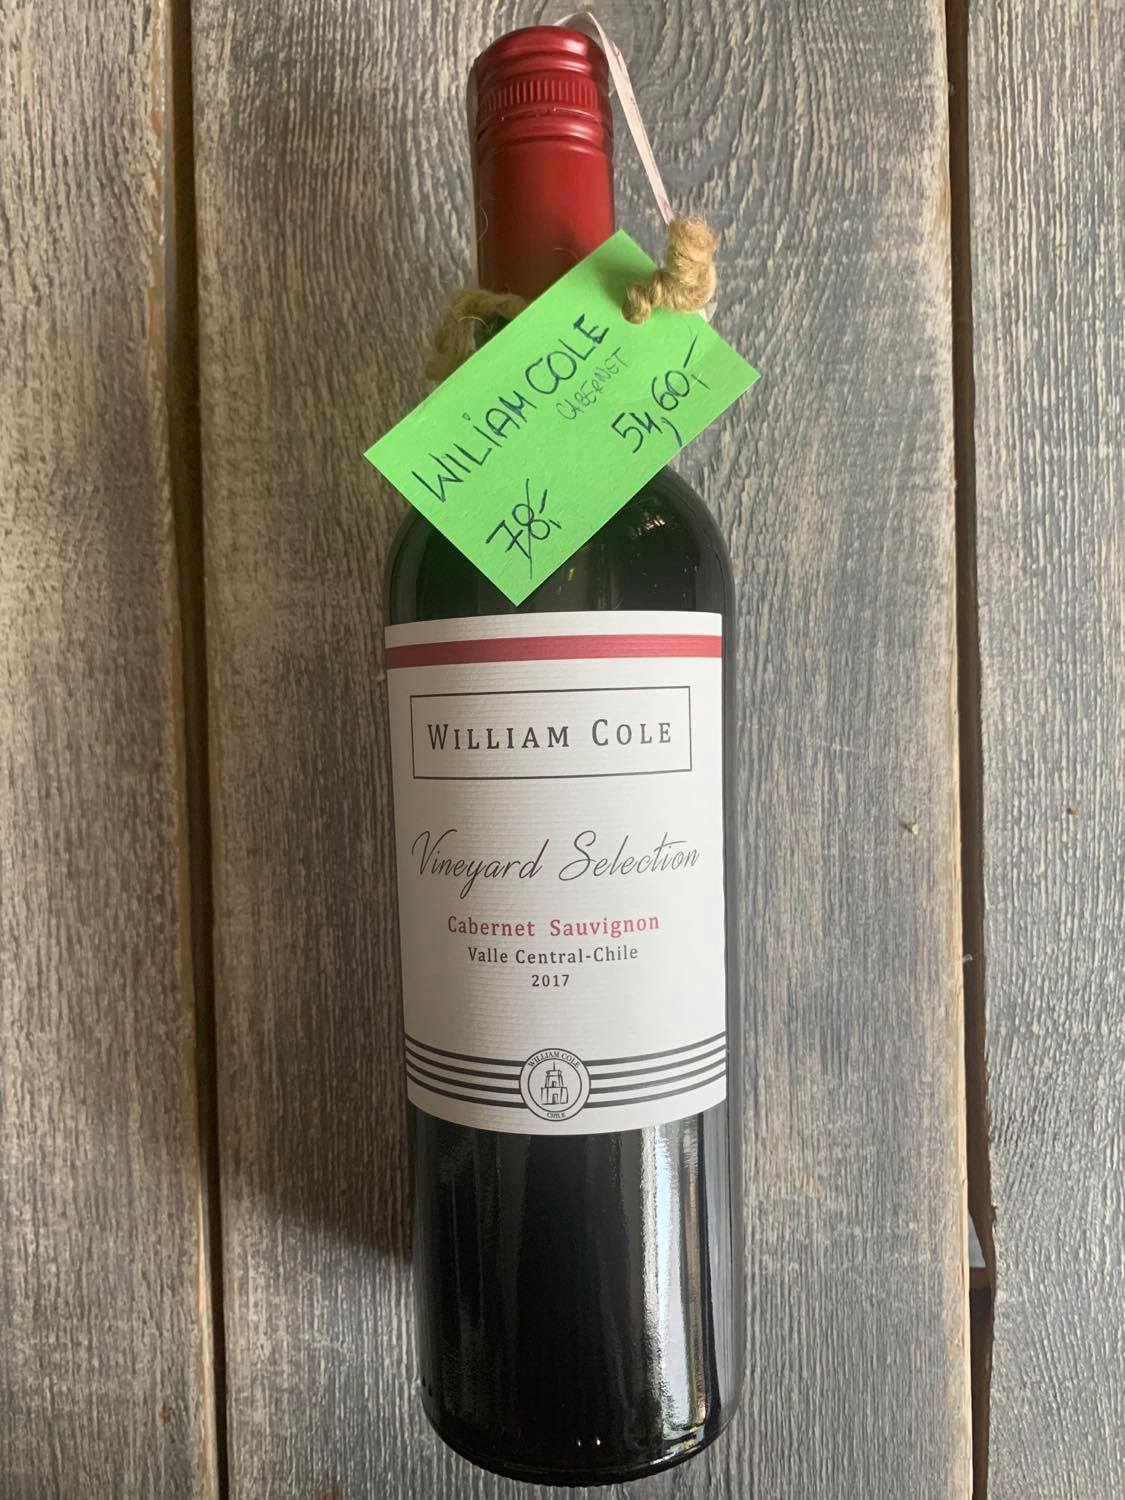 William Cole Vineyard Selection Cabernet Sauvignon